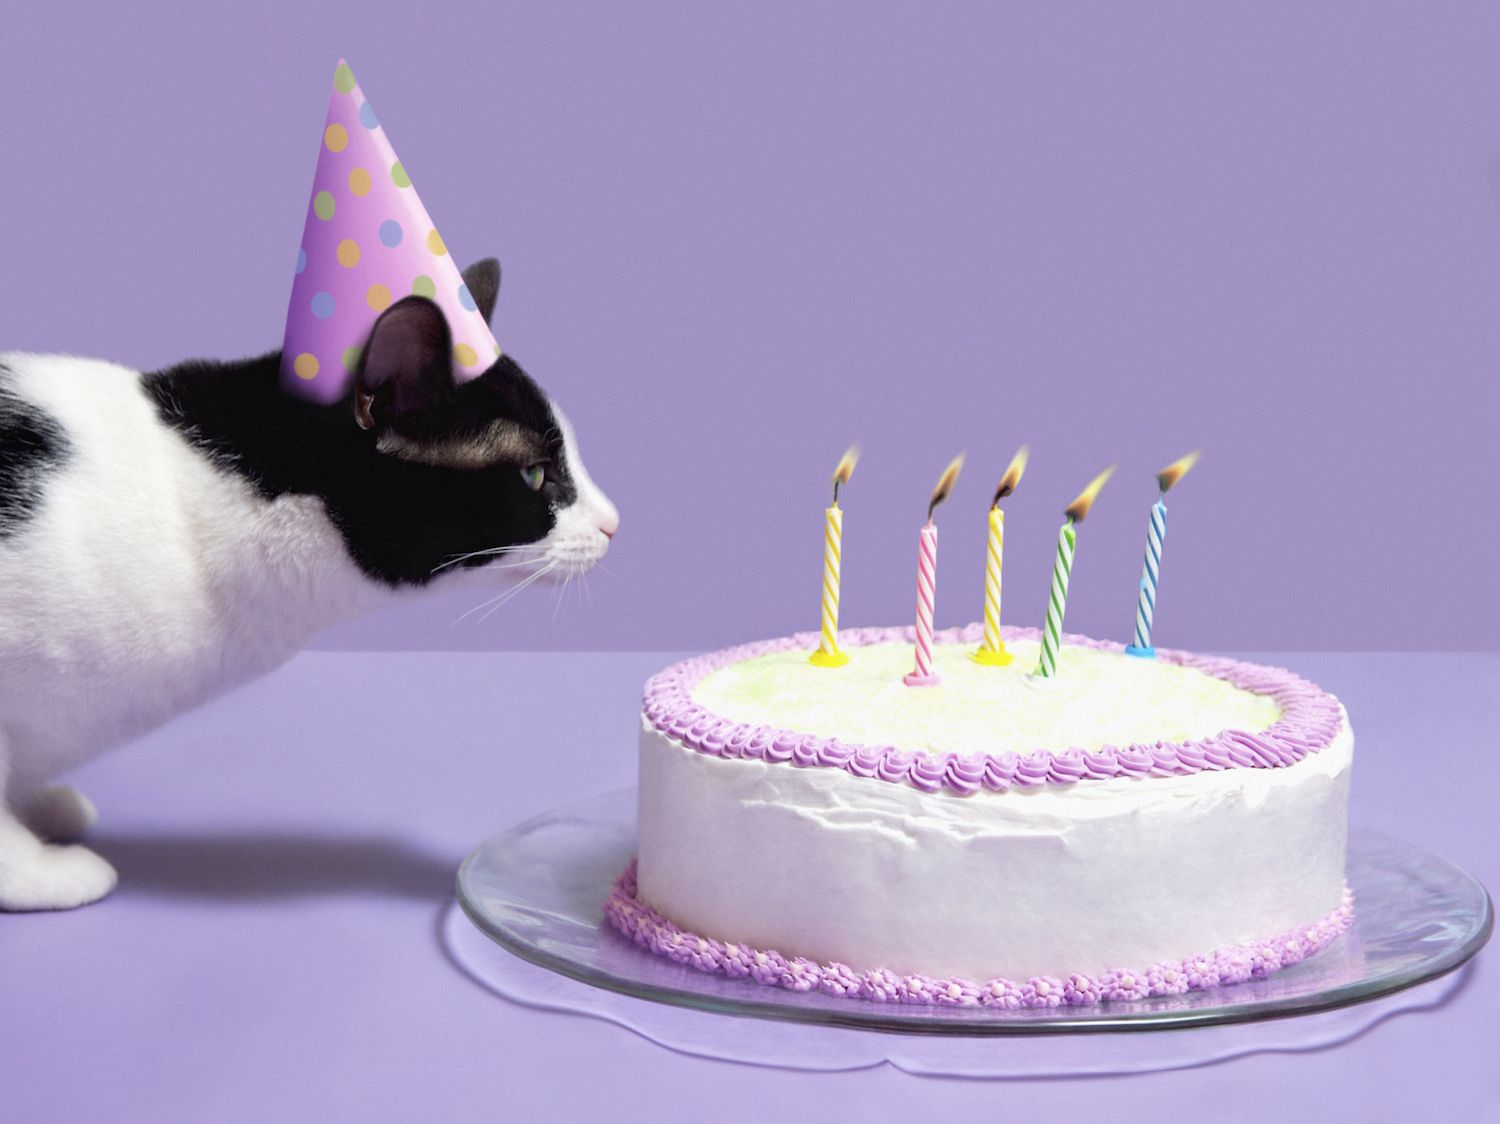 7 Fun Ways To Celebrate Your Cats Birthday